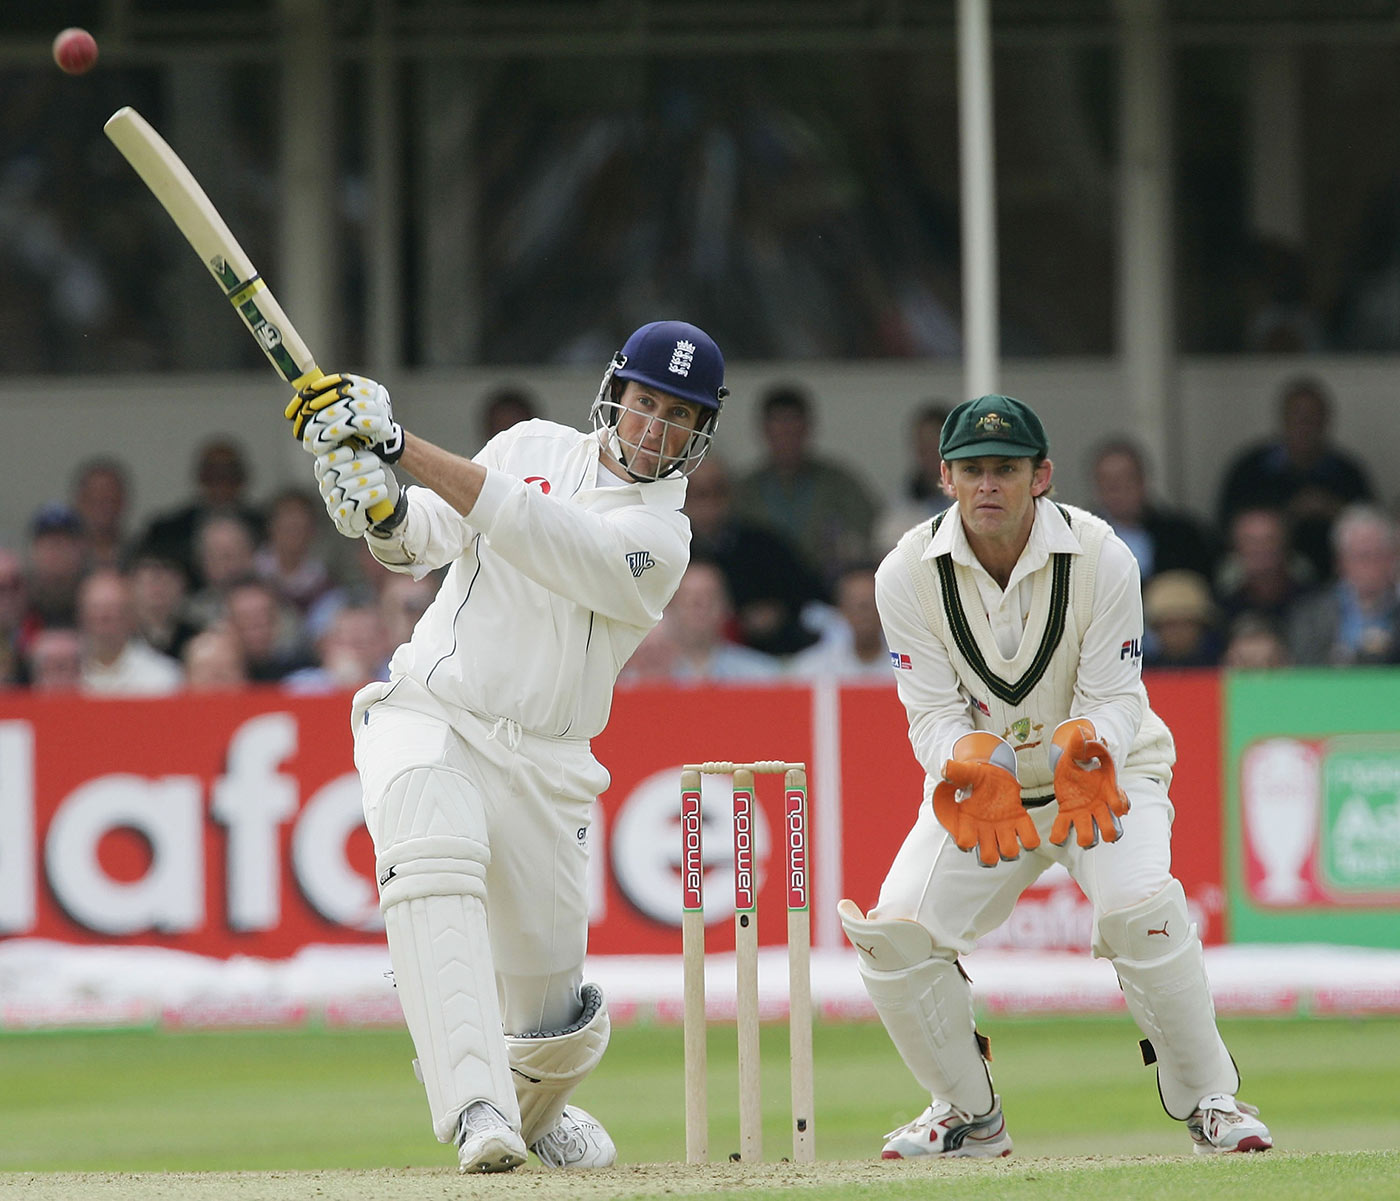 Edgbaston 2005: Trescothick's 90 got the classic Test off to a flying start